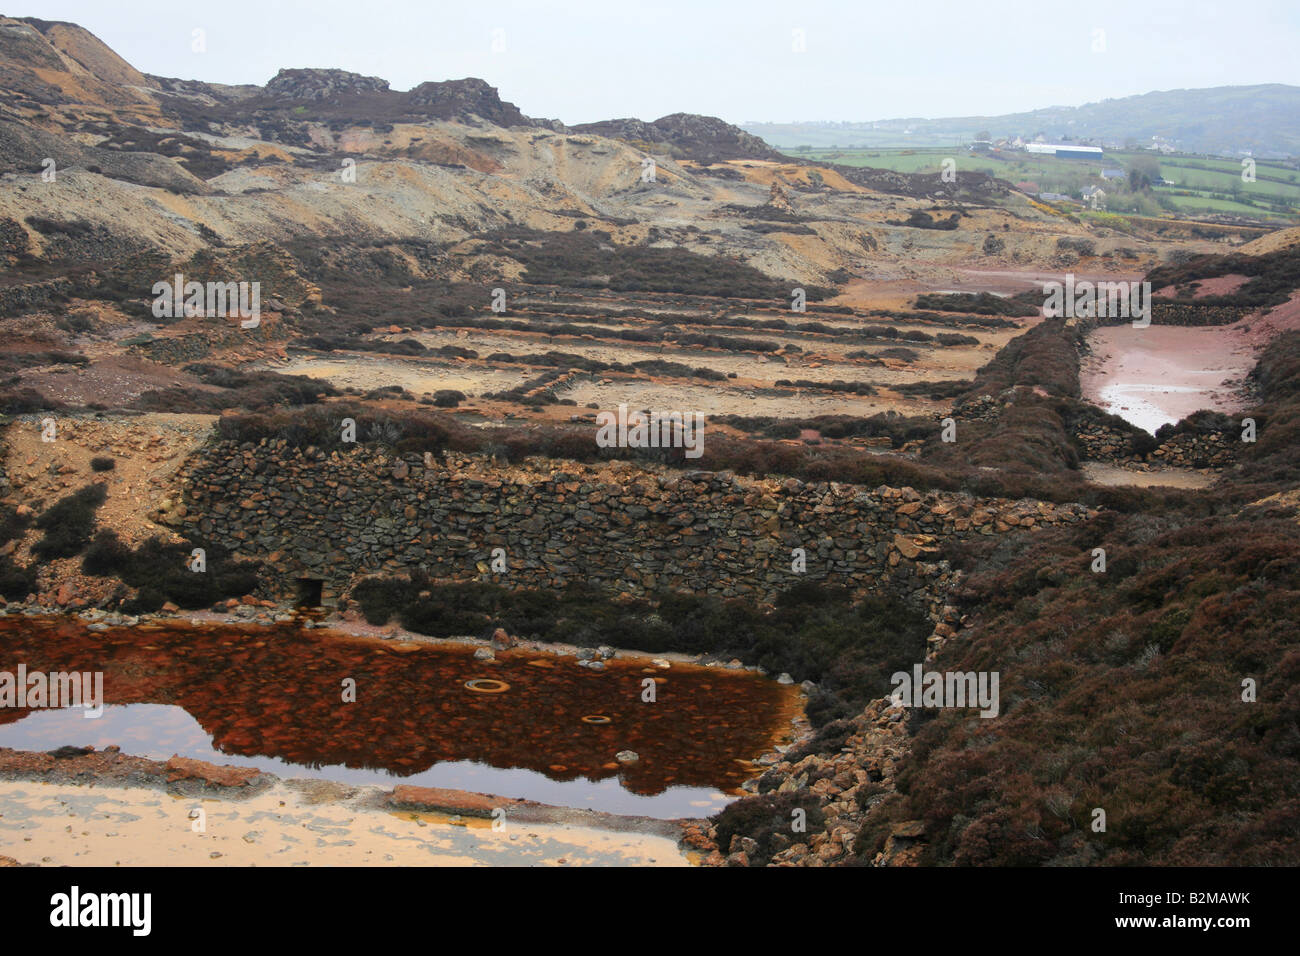 The old copper mine of Parys Mountain on the island of Anglesey in Wales - Stock Image